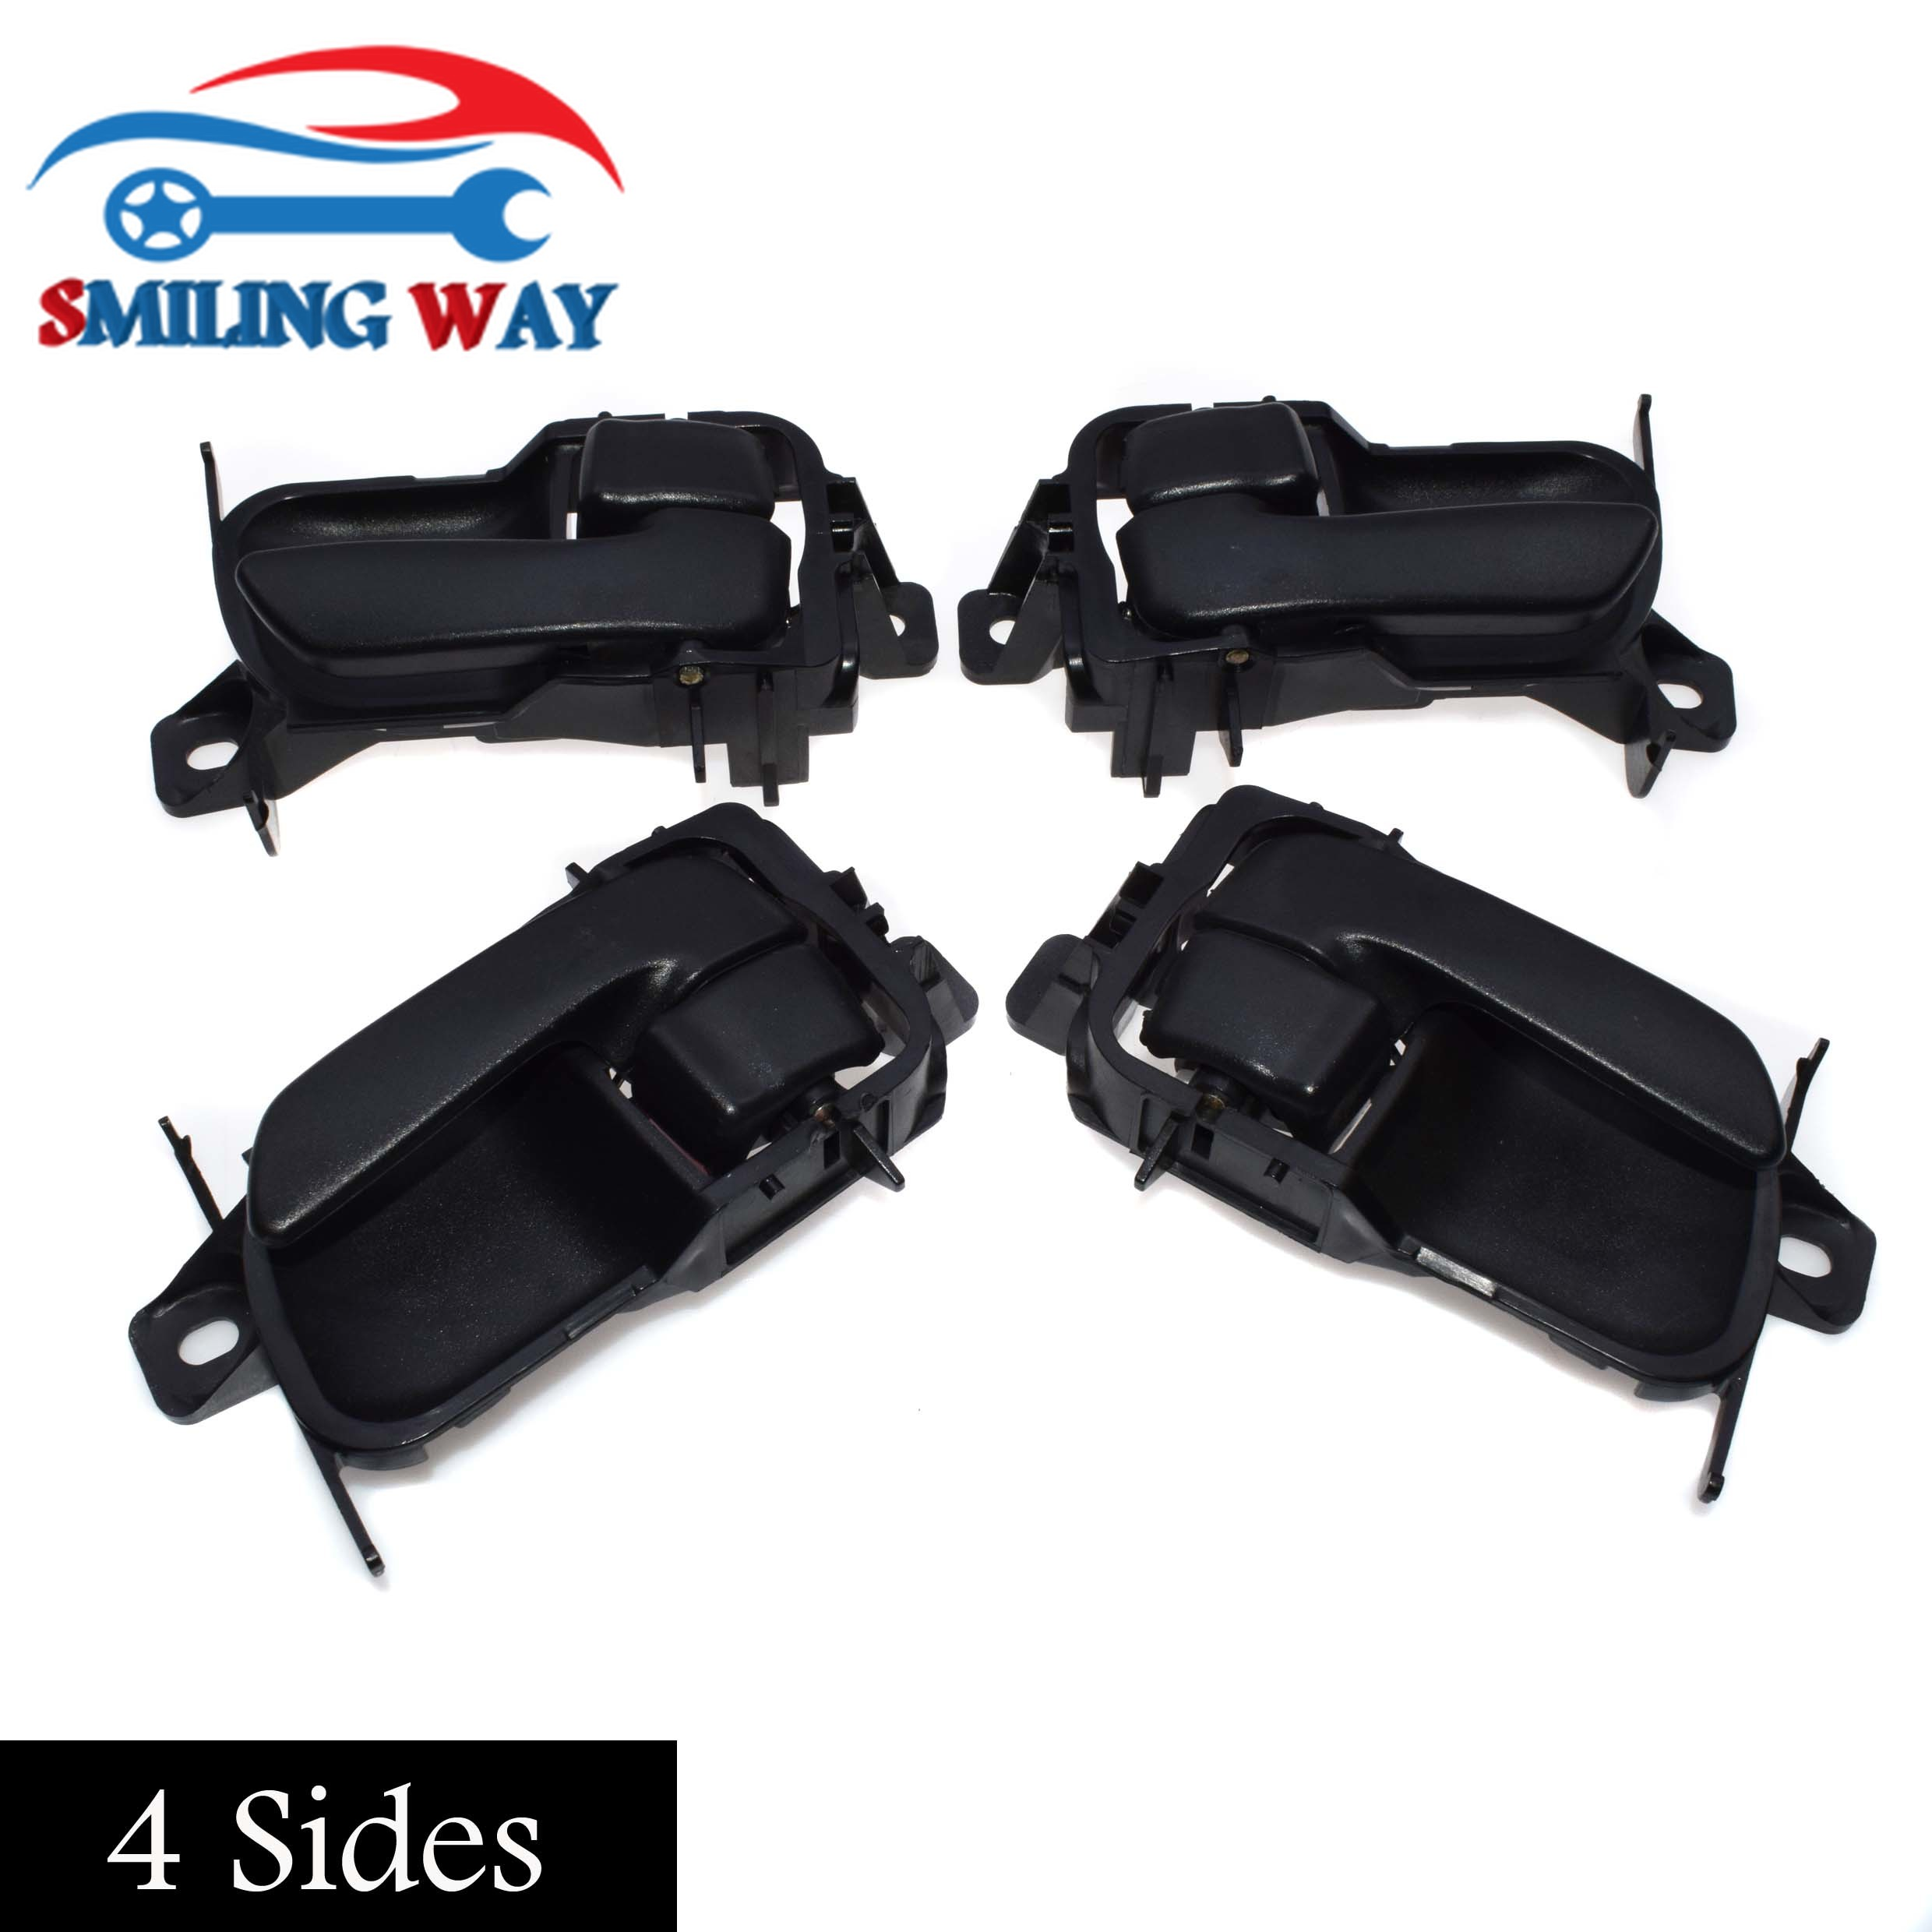 Interior Door Handles Auto Replacement Parts Good Isance Inside Inter Door Handle Front Rear Left Driver Side For Toyota Avalon 3.0l V6 1995-1999 Oem# 6920507010c0 6920607010